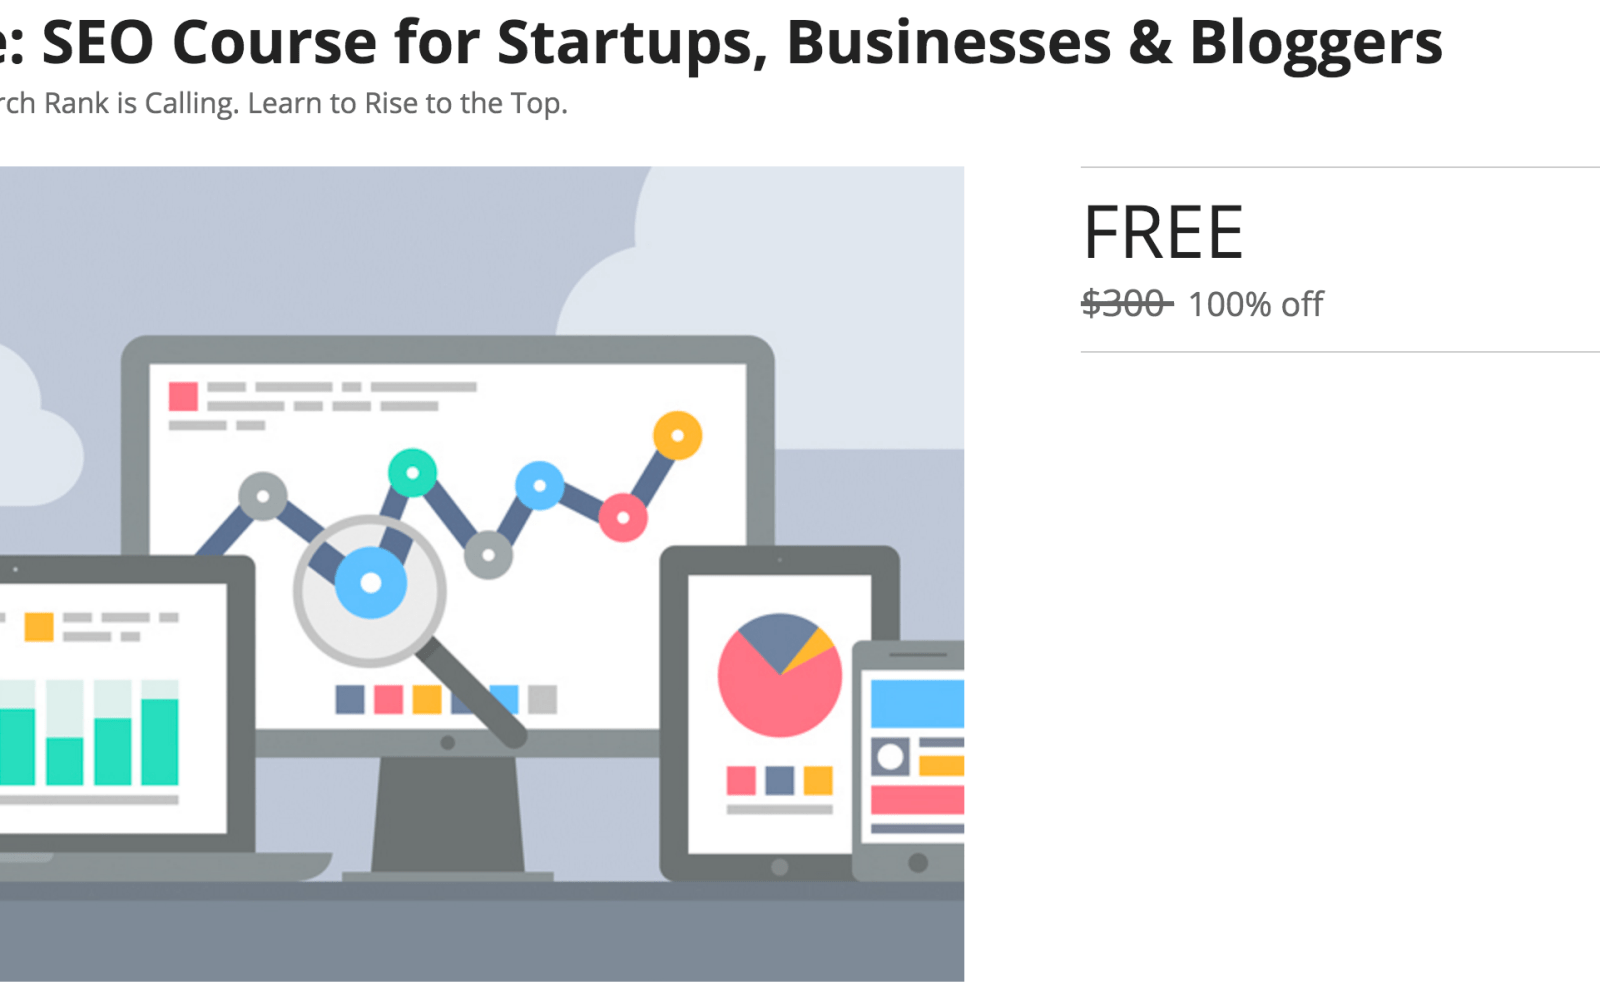 Freebies: SEO Course for Startups, Businesses & Bloggers +